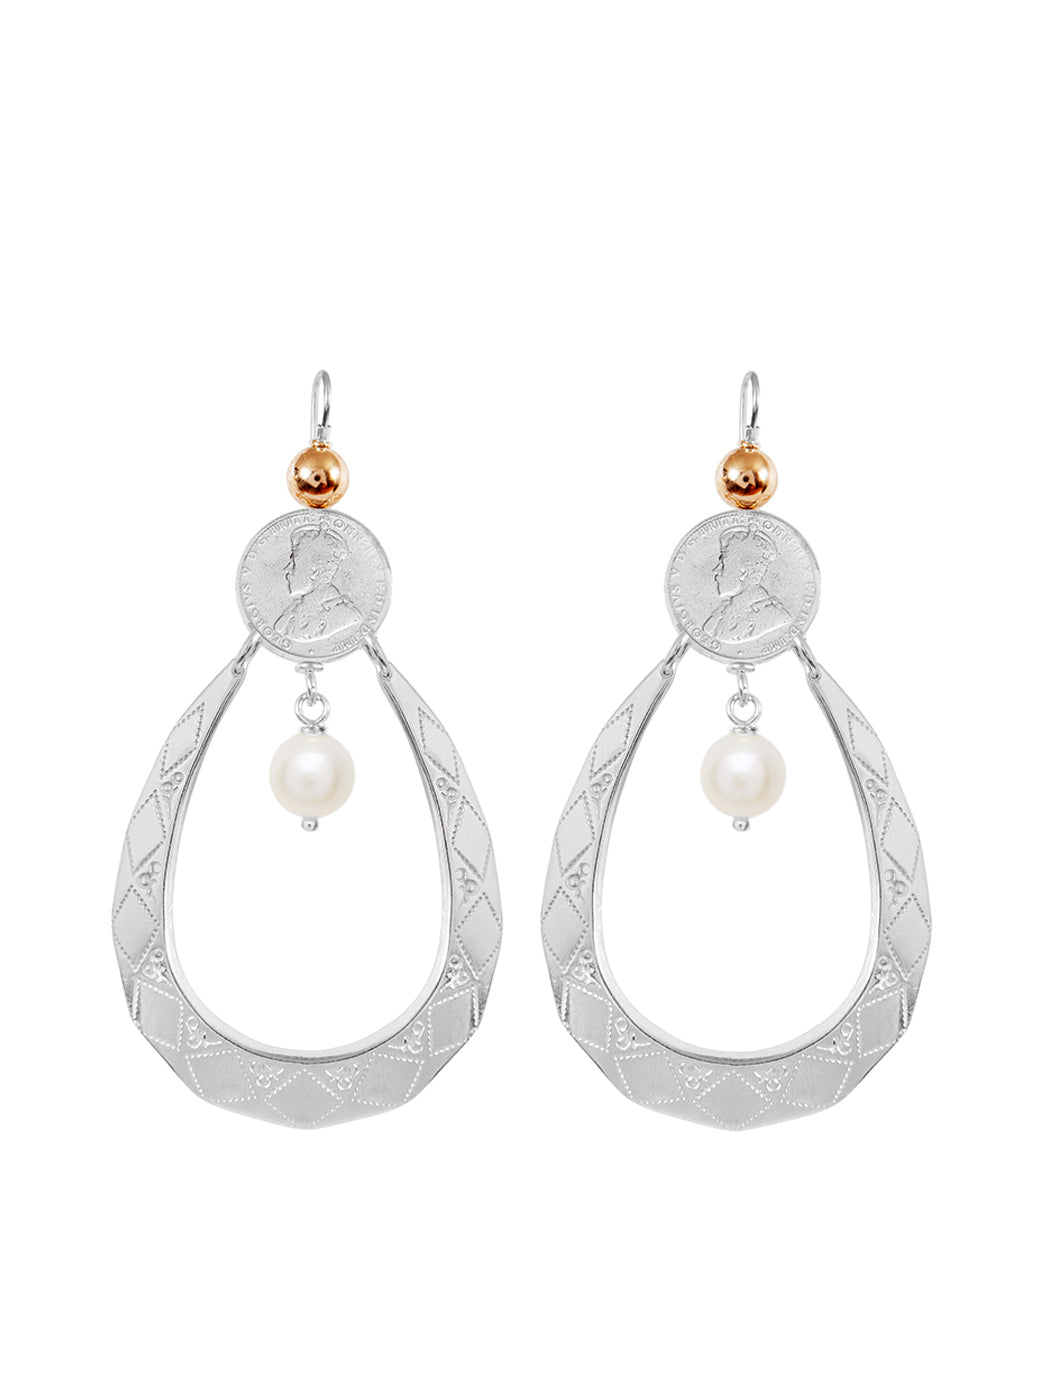 Fiorina Jewellery Sugar Drop Earrings Pearl & Gold